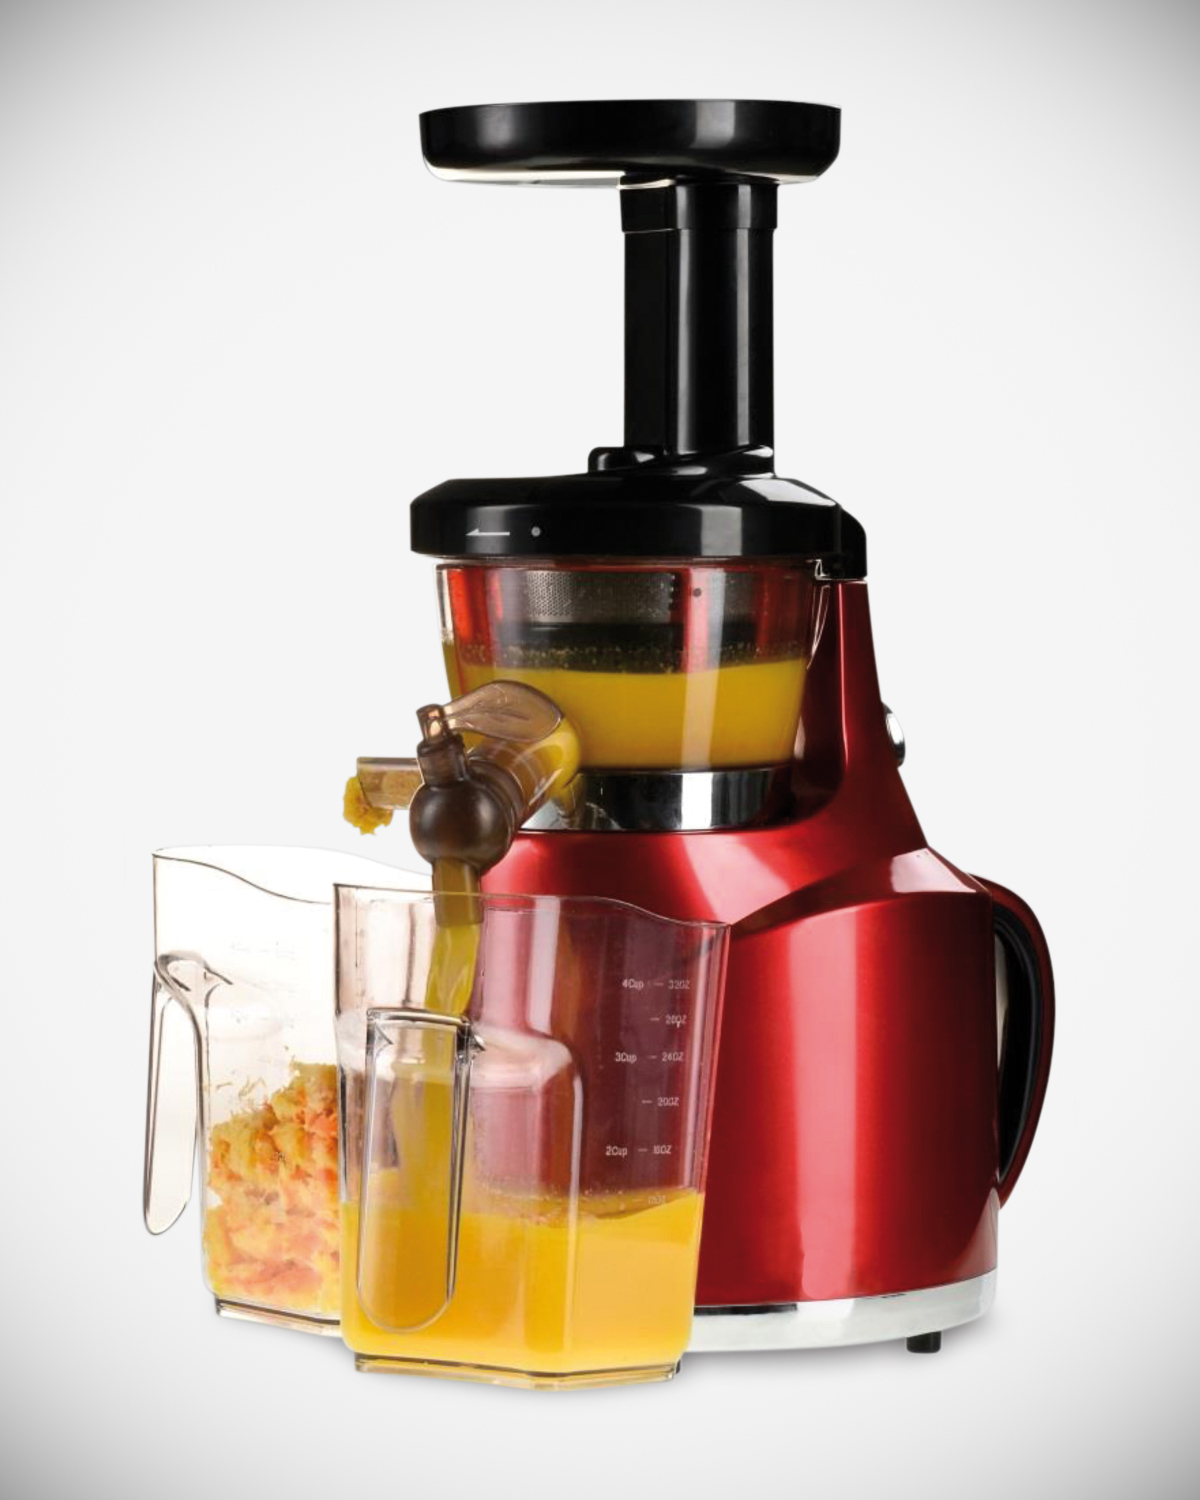 Slow juicer HO.SJ616